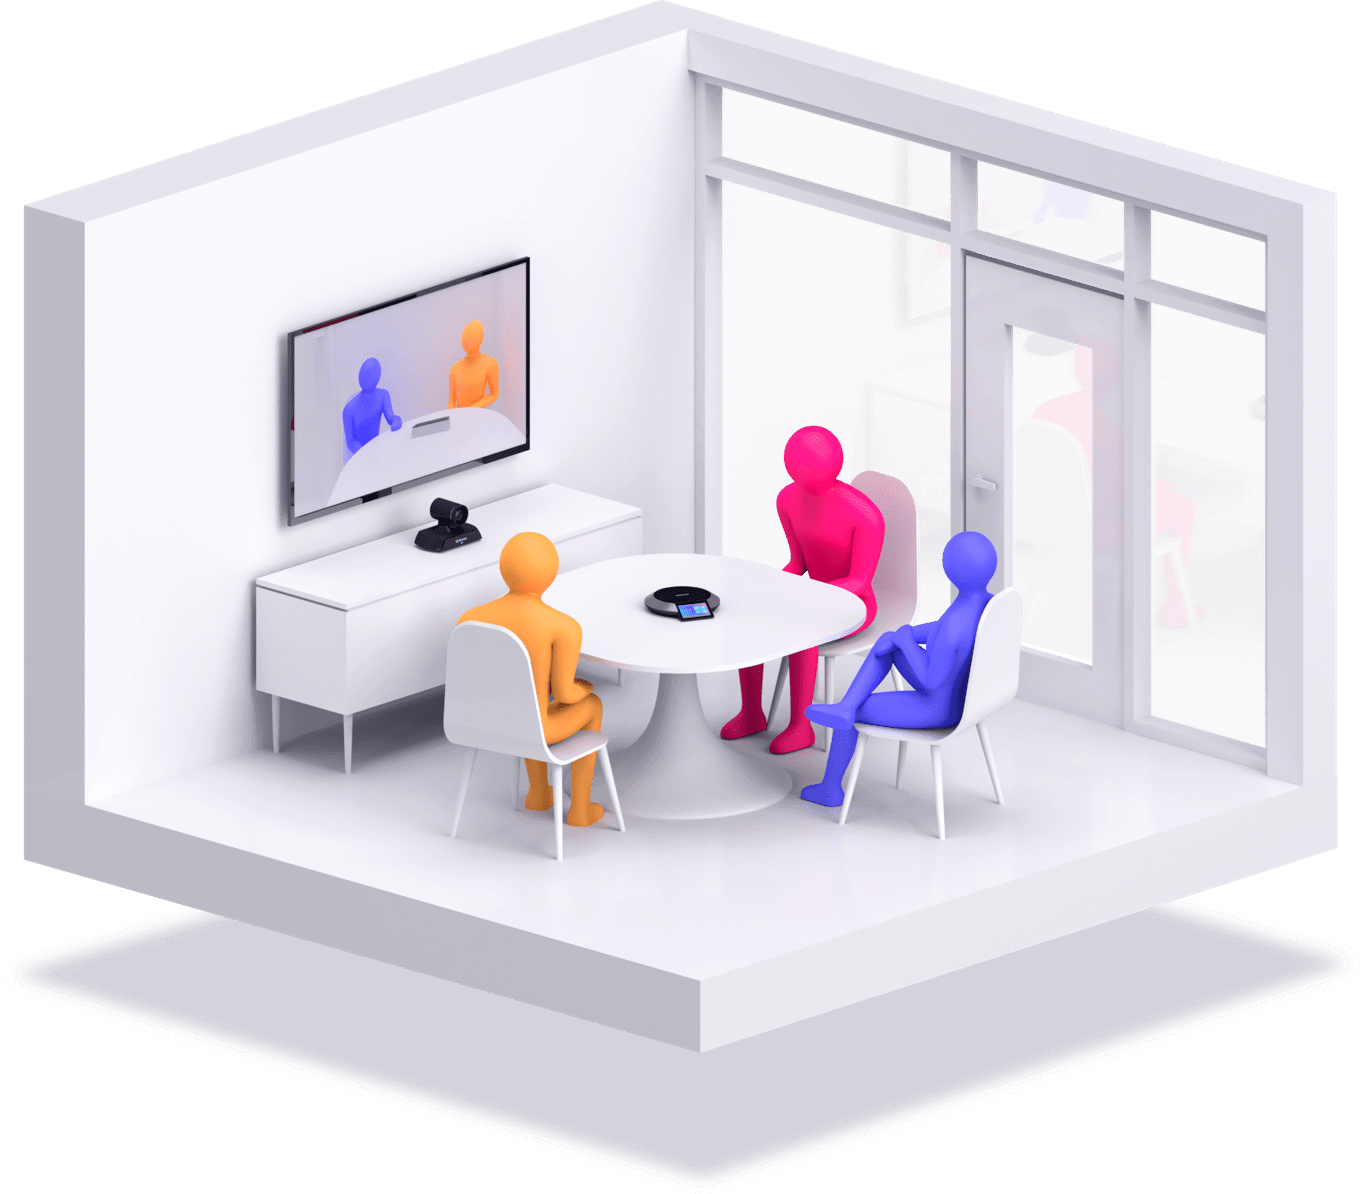 Lifesize: Video Conferencing App and Meeting Room Solutions